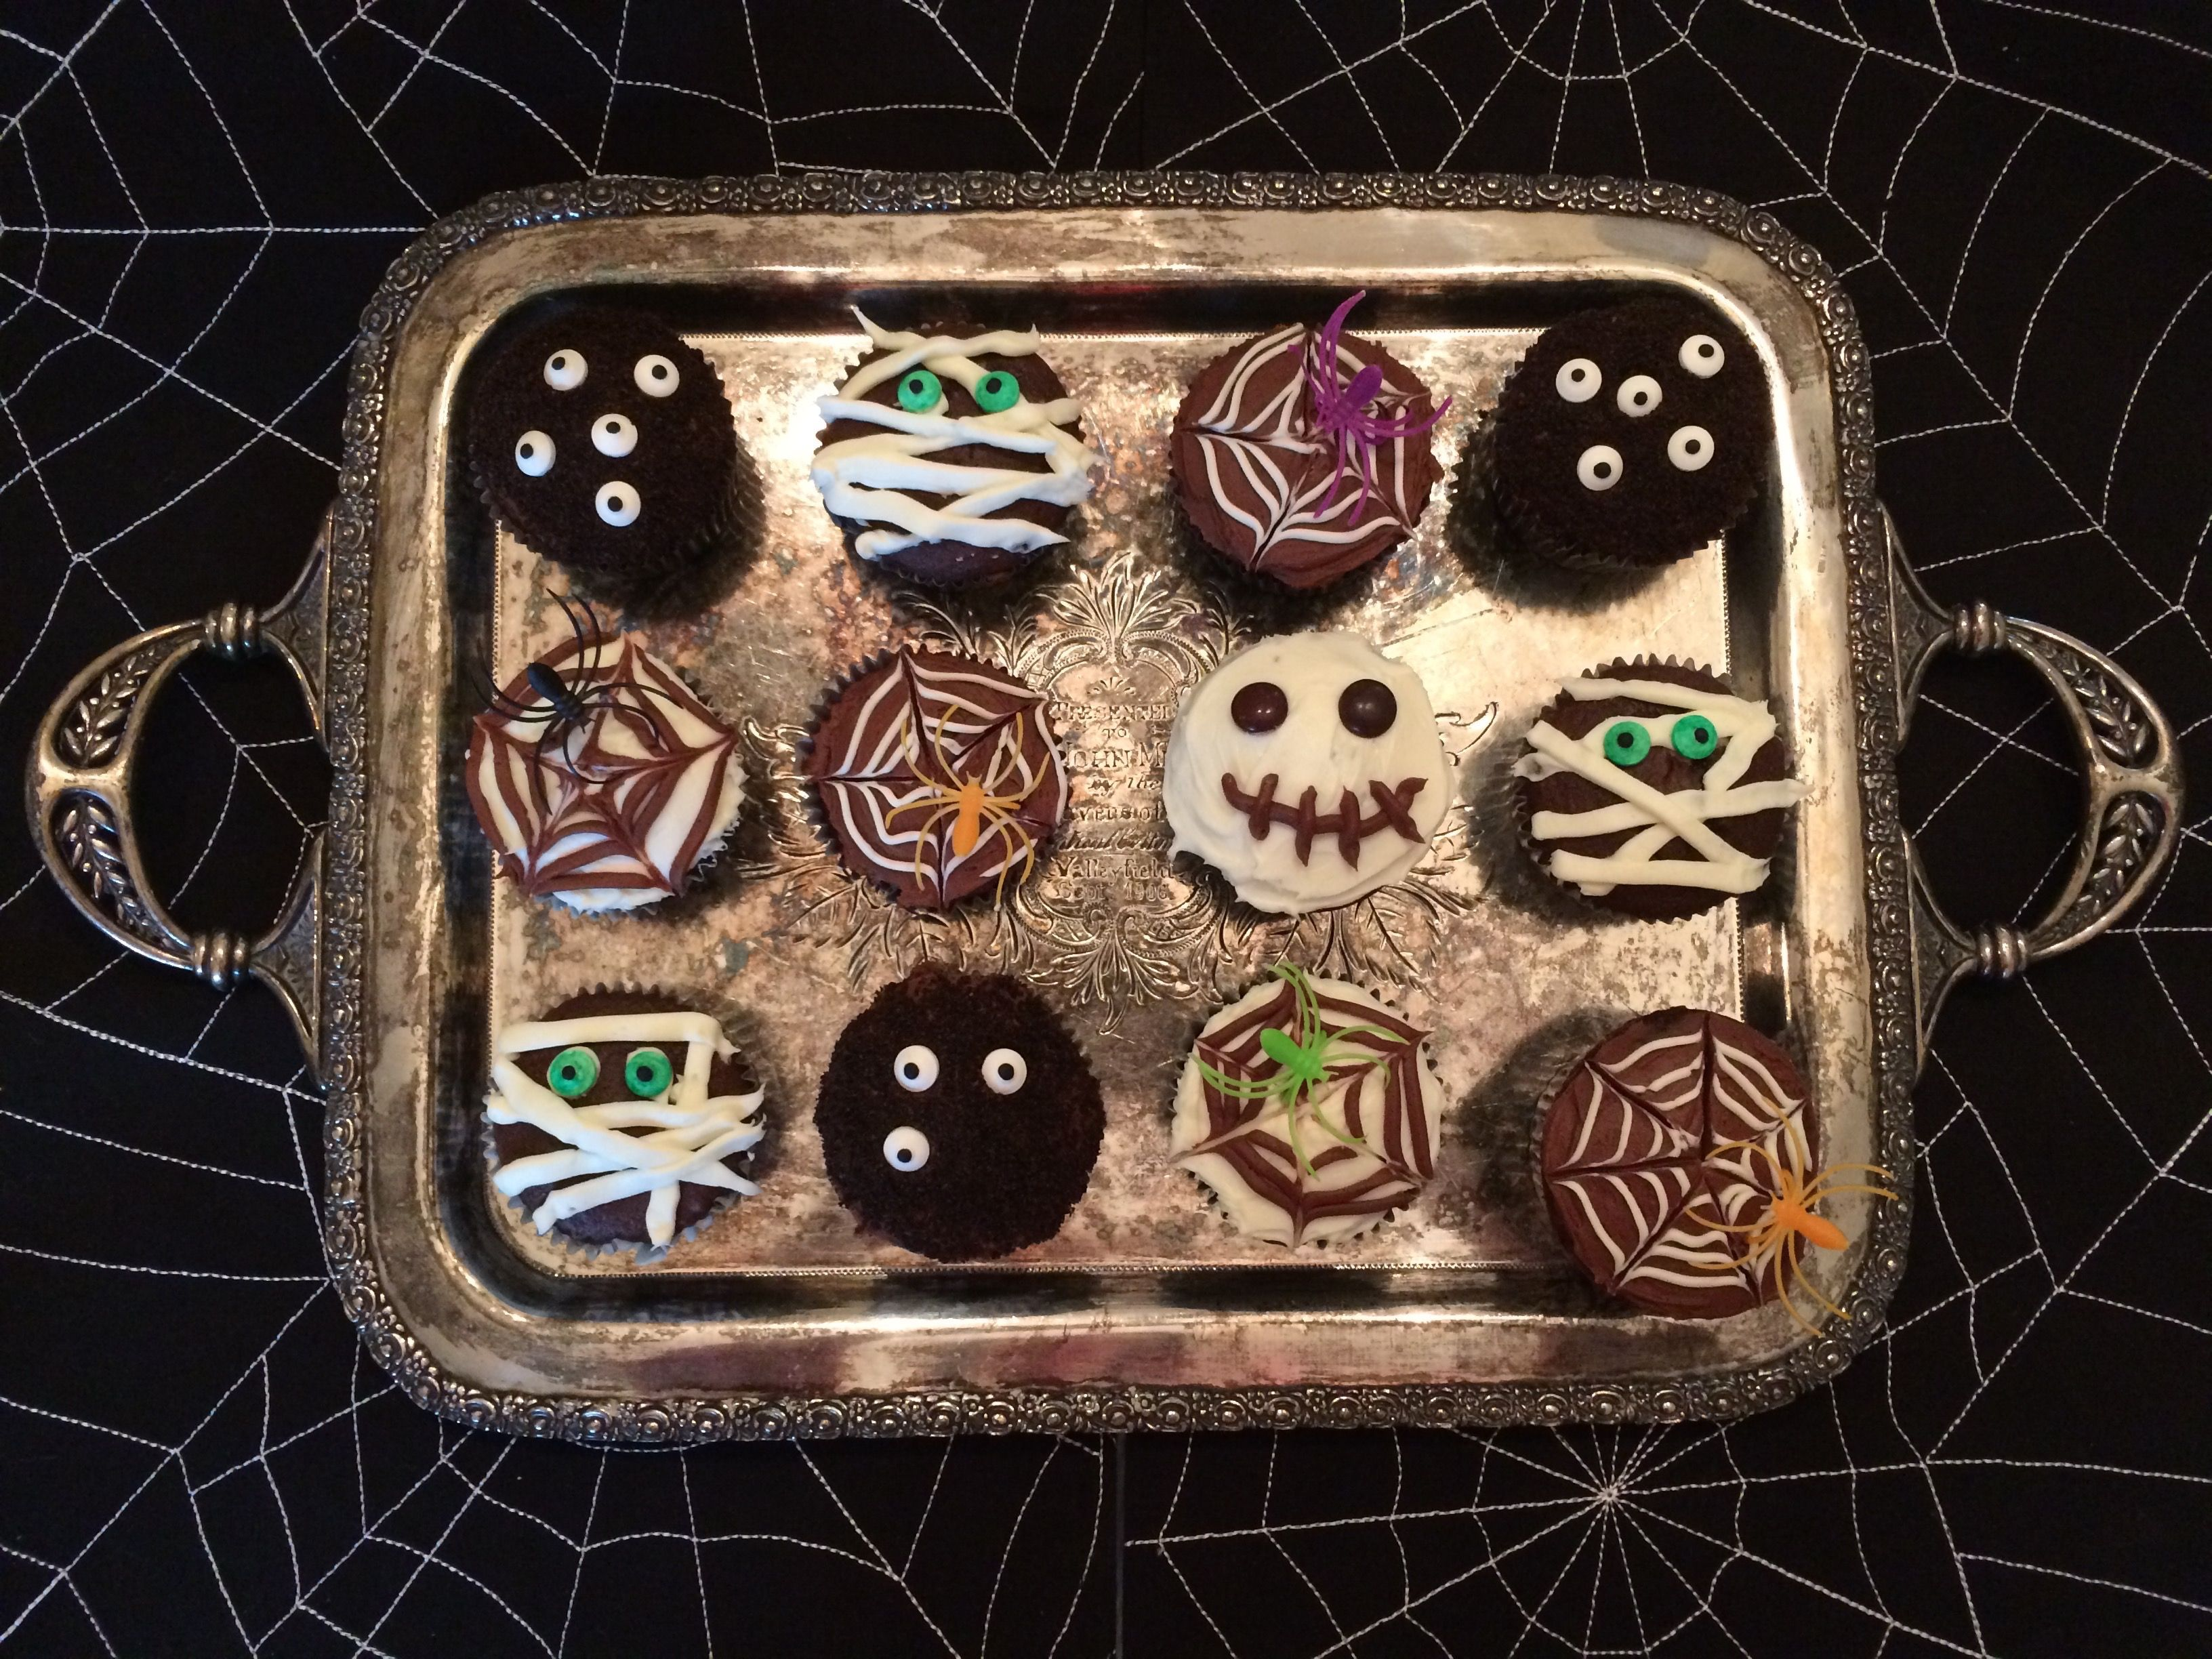 Cream cheese filled chocolate cupcakes with fun halloween designs for the child in all of us!